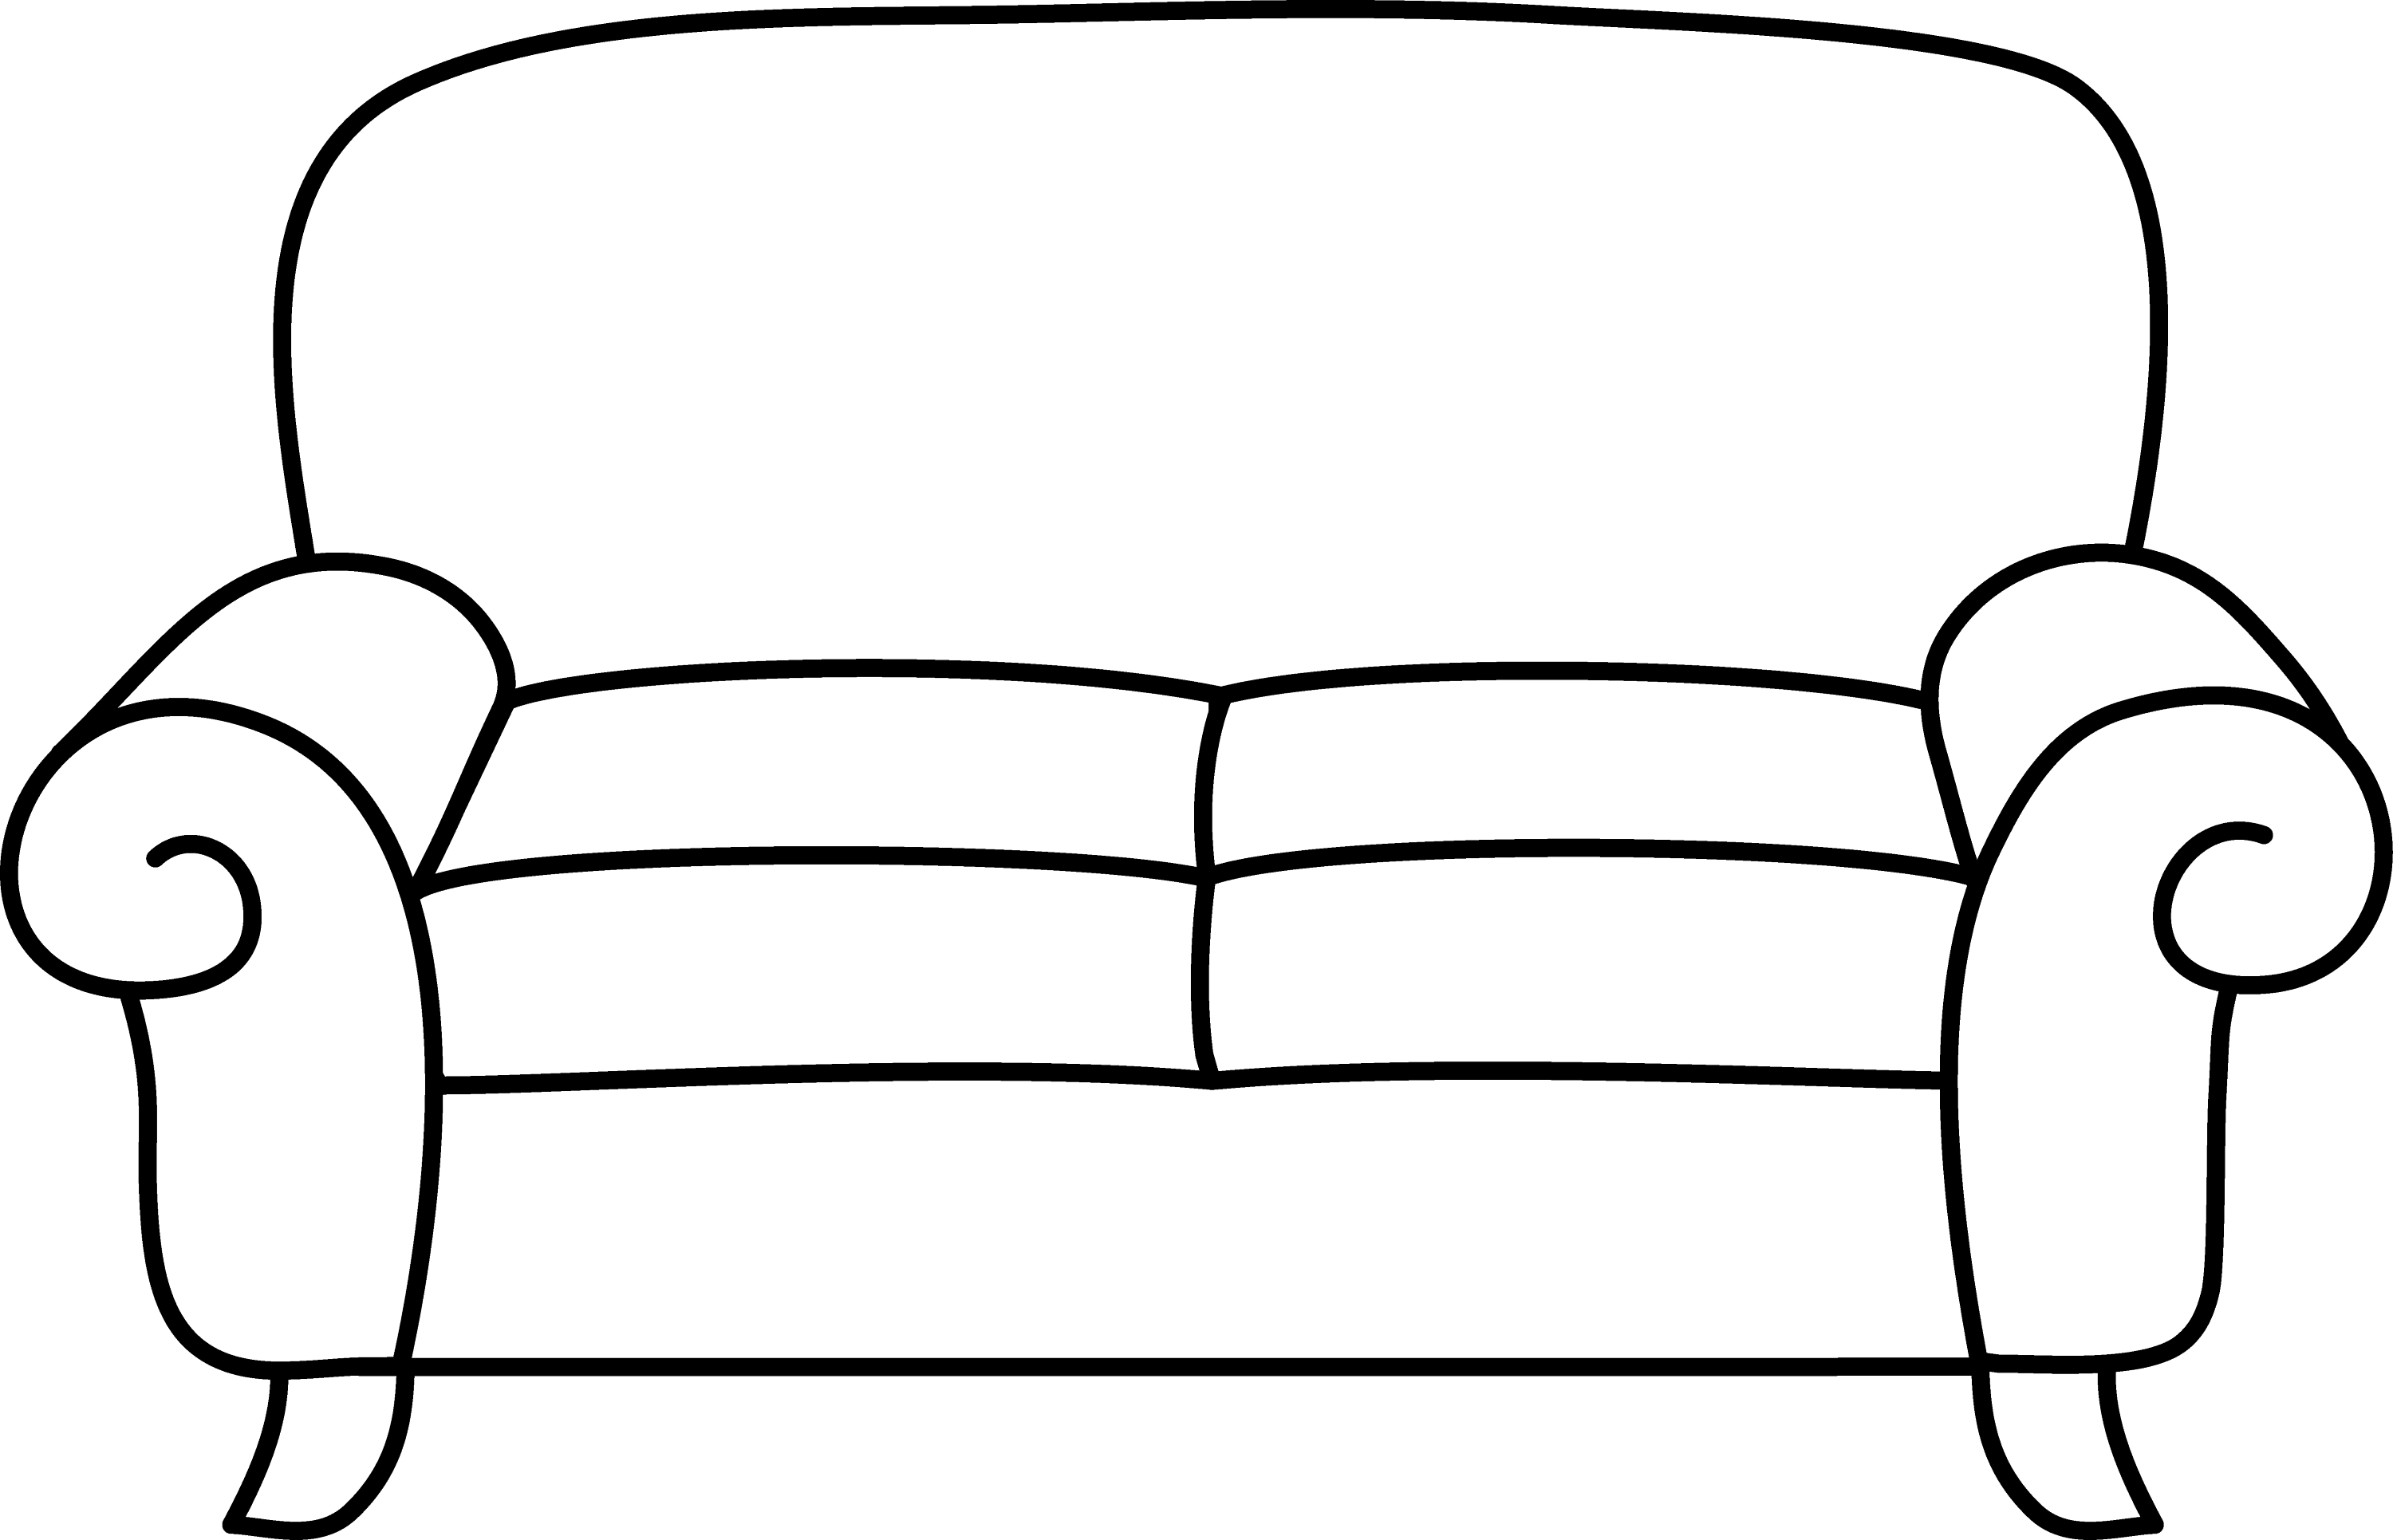 Sofa coloring page free clip art for Sofa clipart